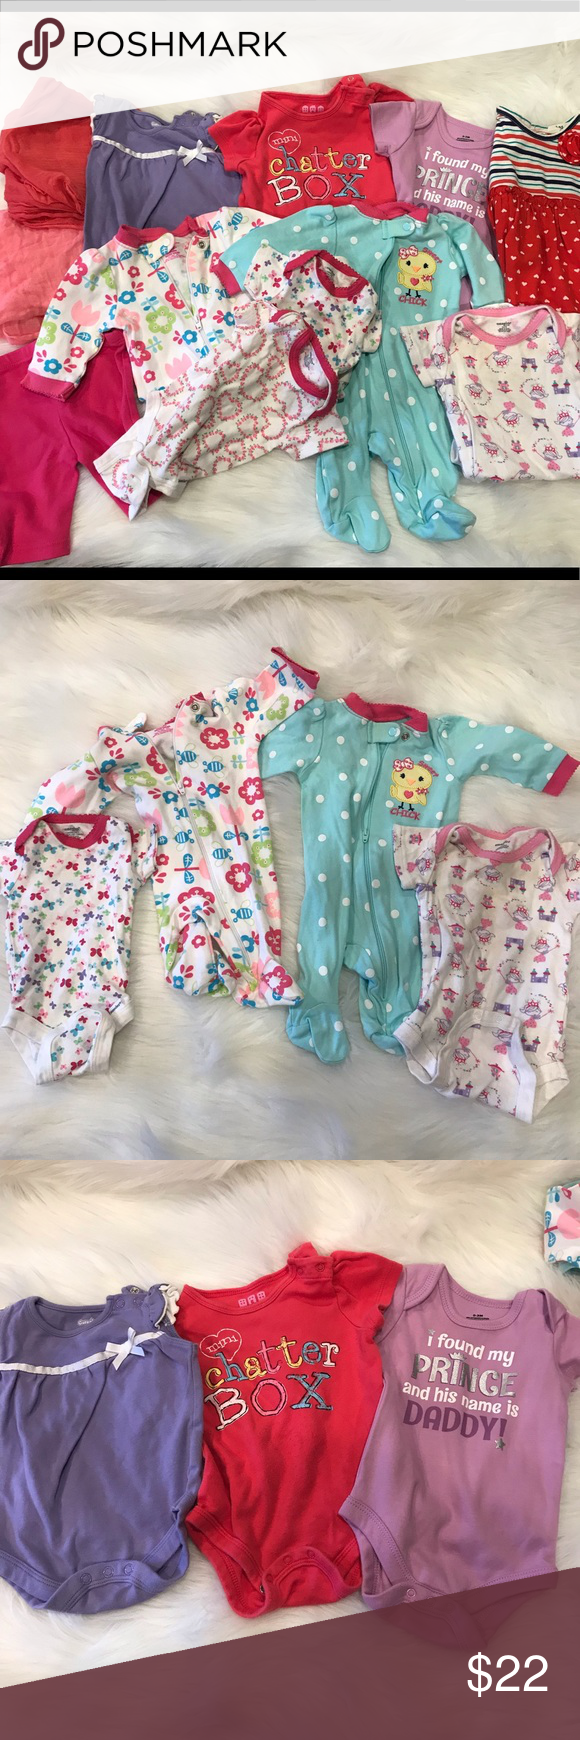 4869a3b98 Bundle of baby girls clothes ! 2 newborn wraps for pictures Onesies ...